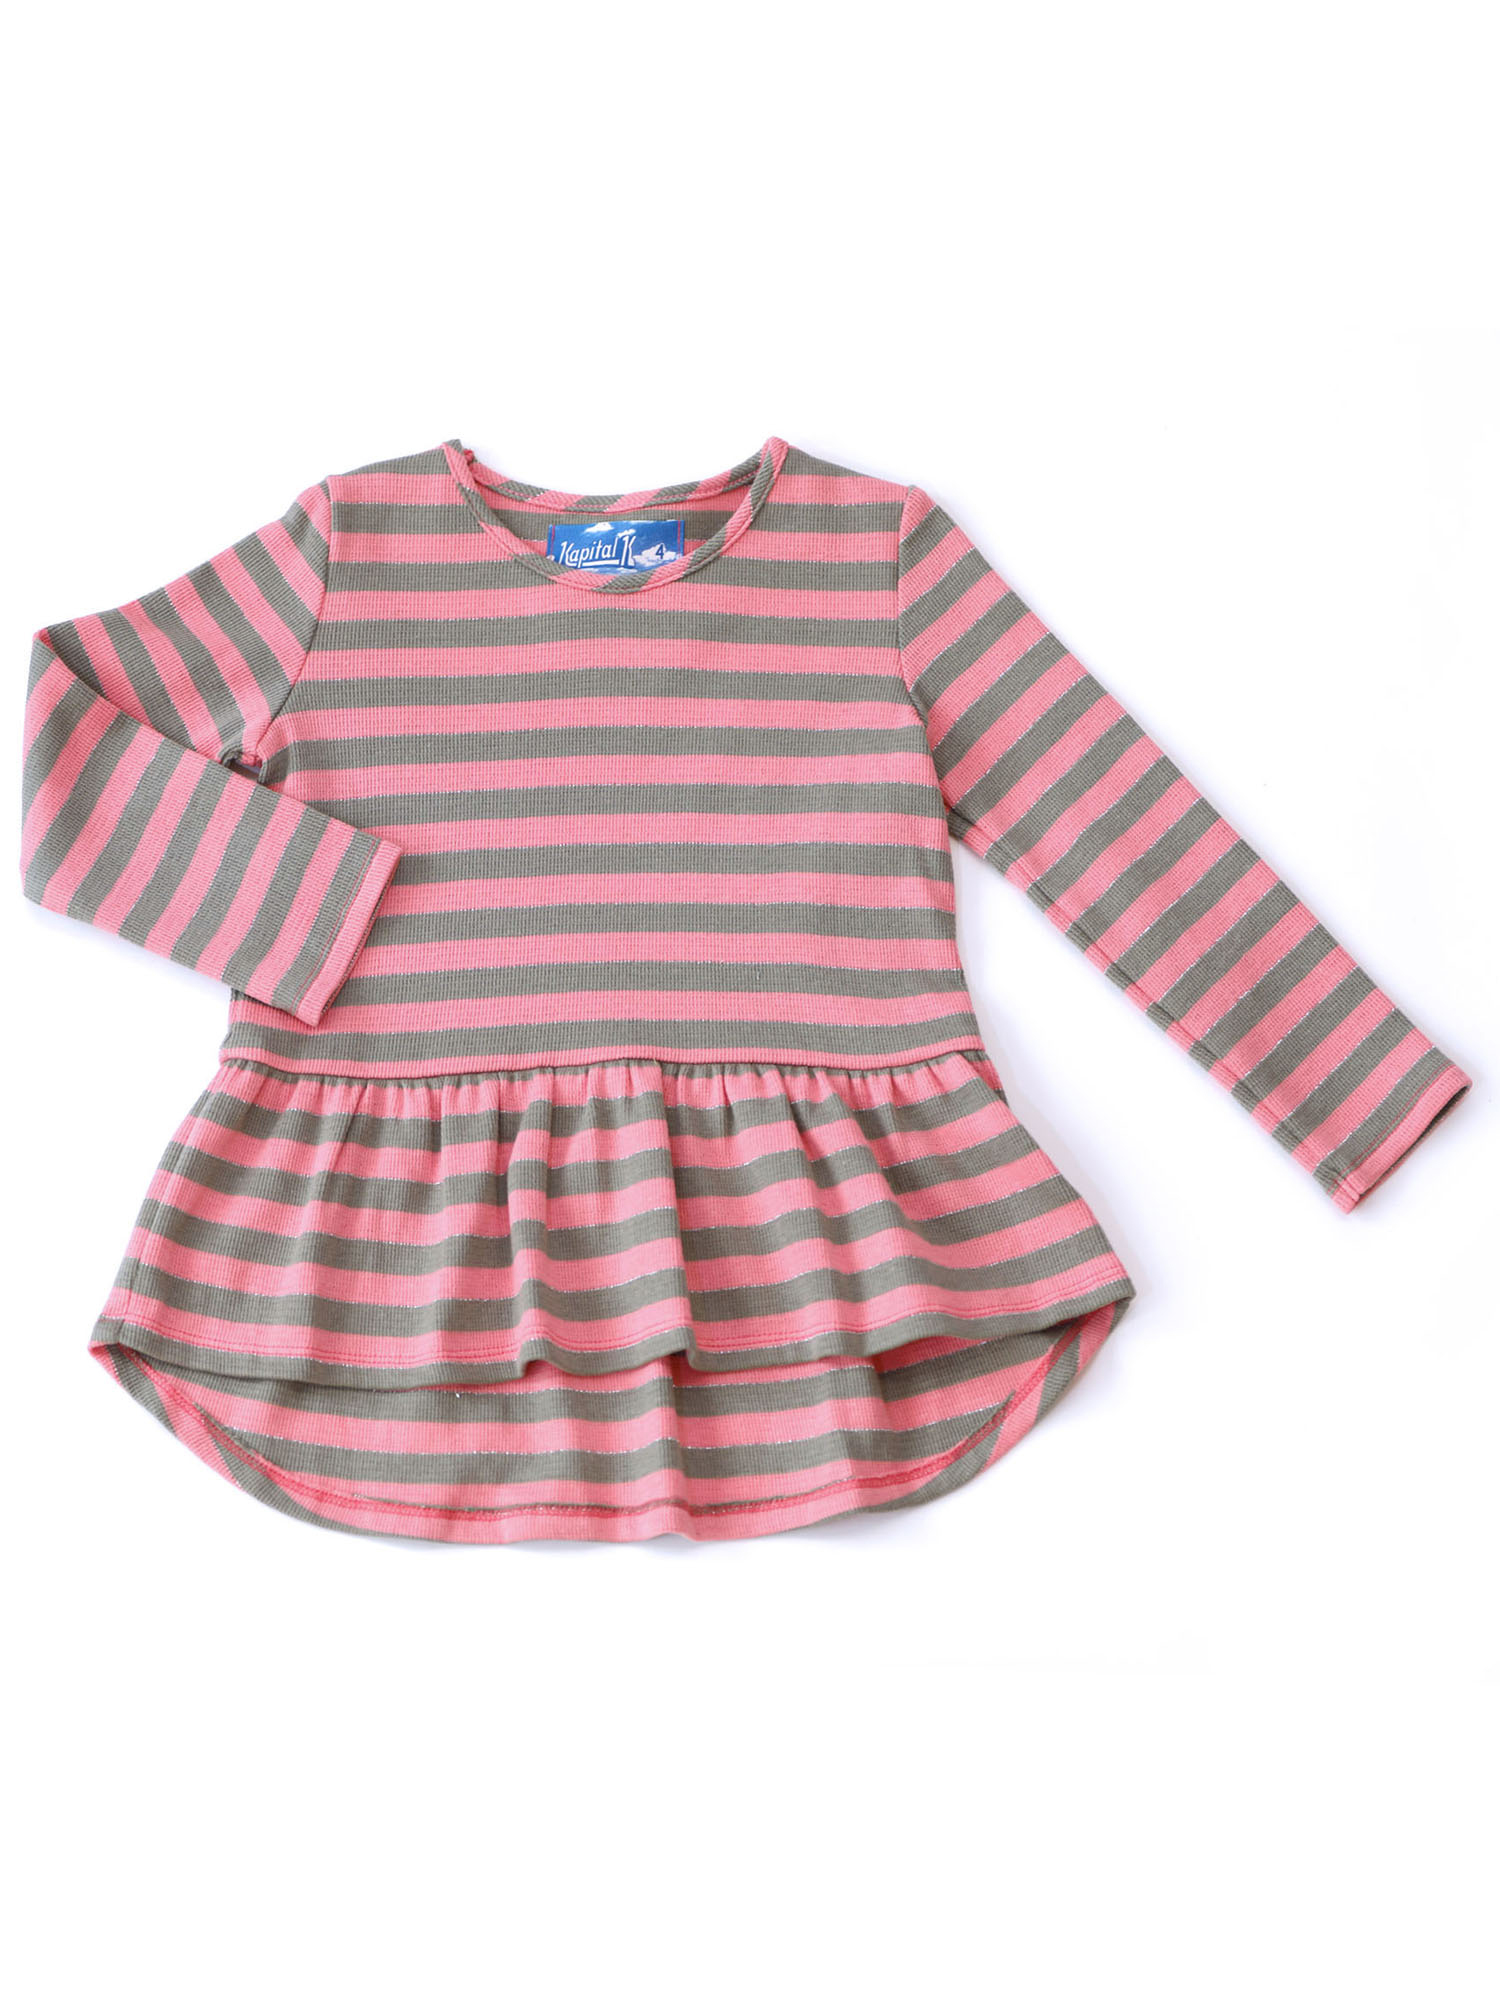 Kapital K Long Sleeve Striped Swing Top (Baby Girls and Toddler Girls)